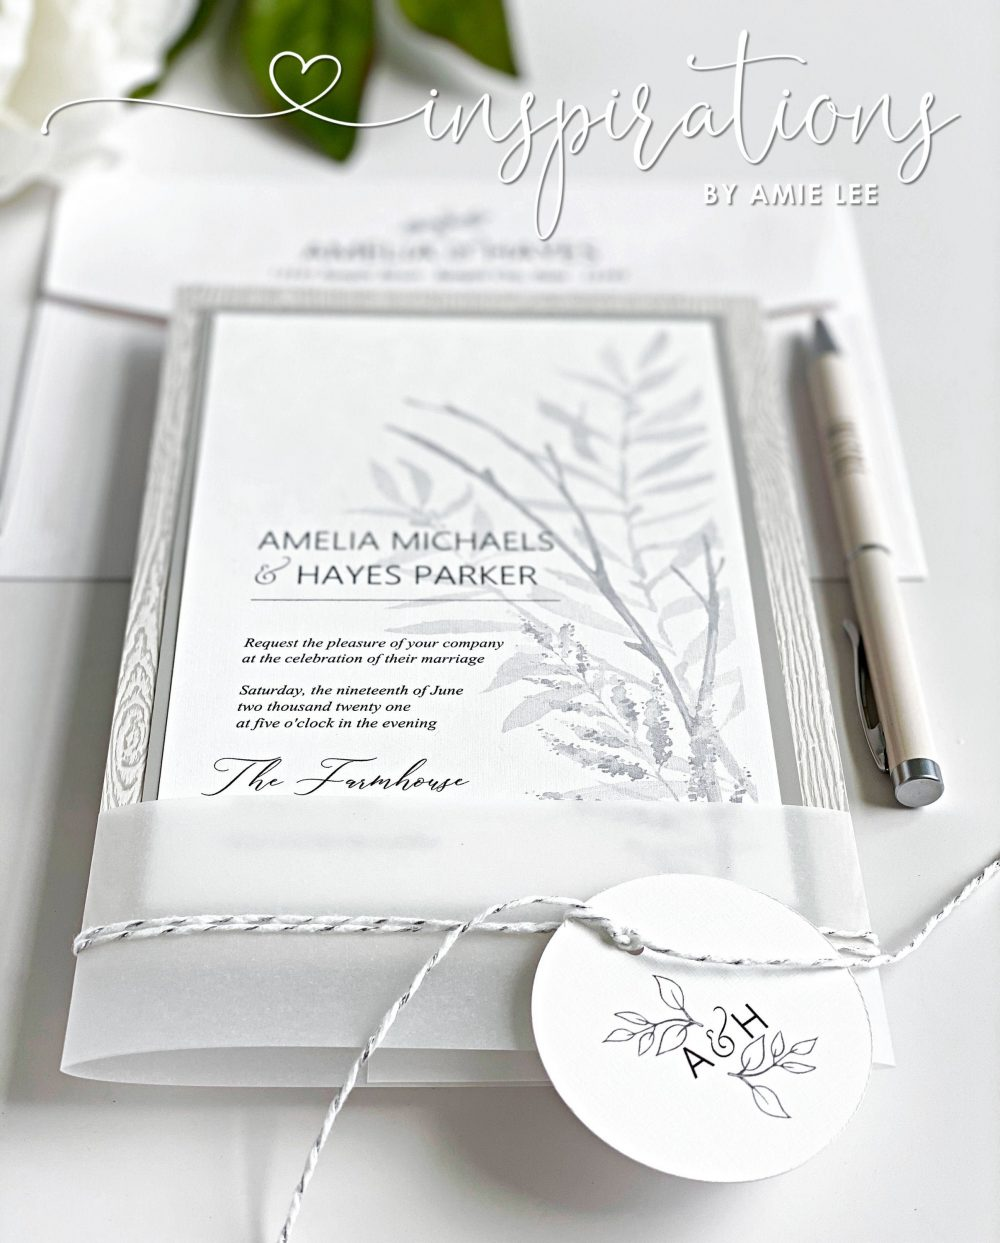 Elegant Farmhouse Wedding Invitations, White Wood Bard Wedding, Rustic Elegance, Countryside Forrest, Textured Invitations